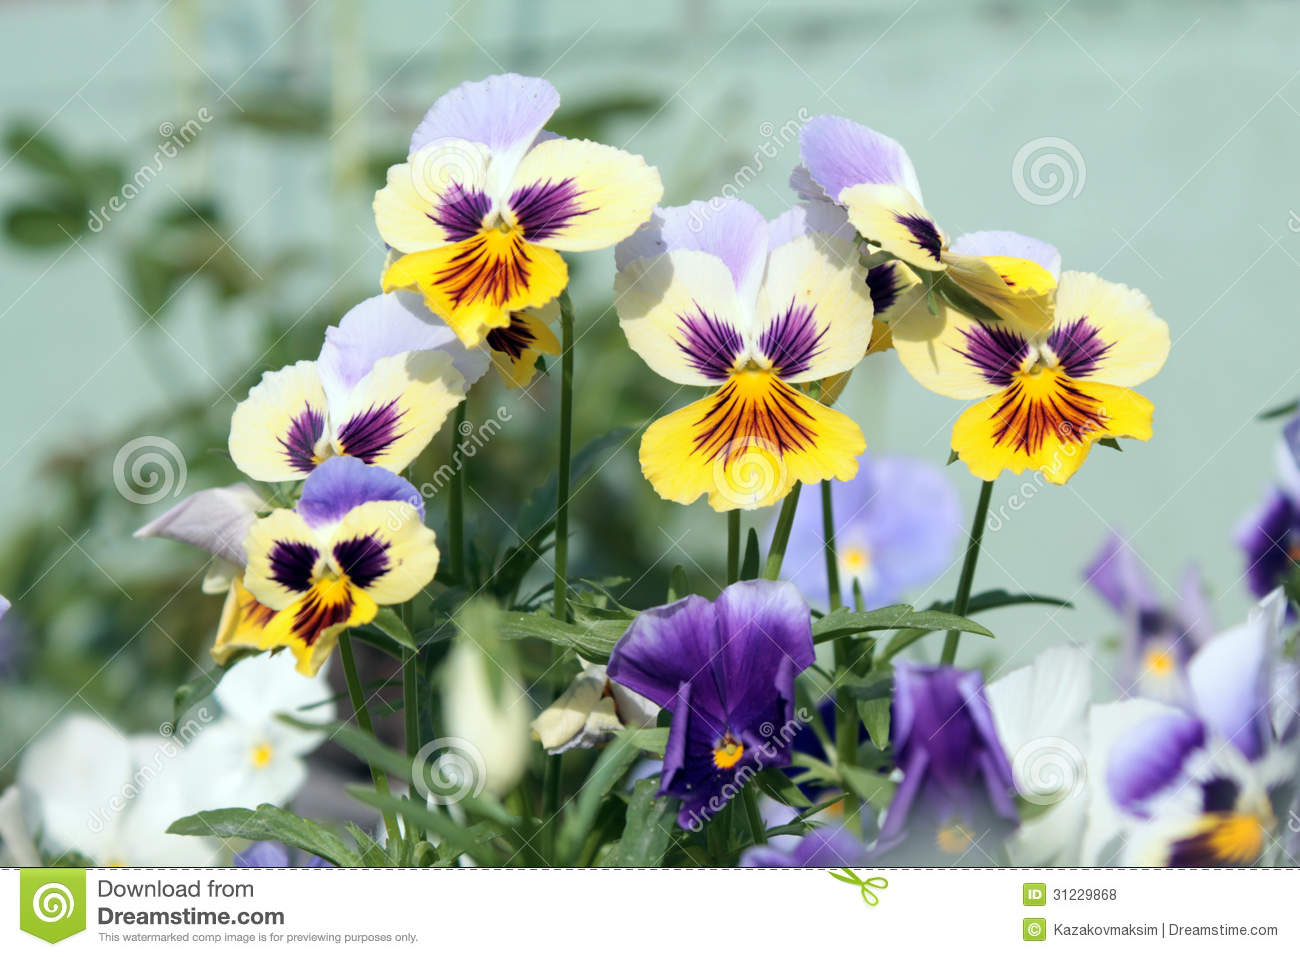 Yellow and white pansies stock photo image of pansies 31229868 yellow and white pansies large flowered hybrid plants cultivated as garden flowers mightylinksfo